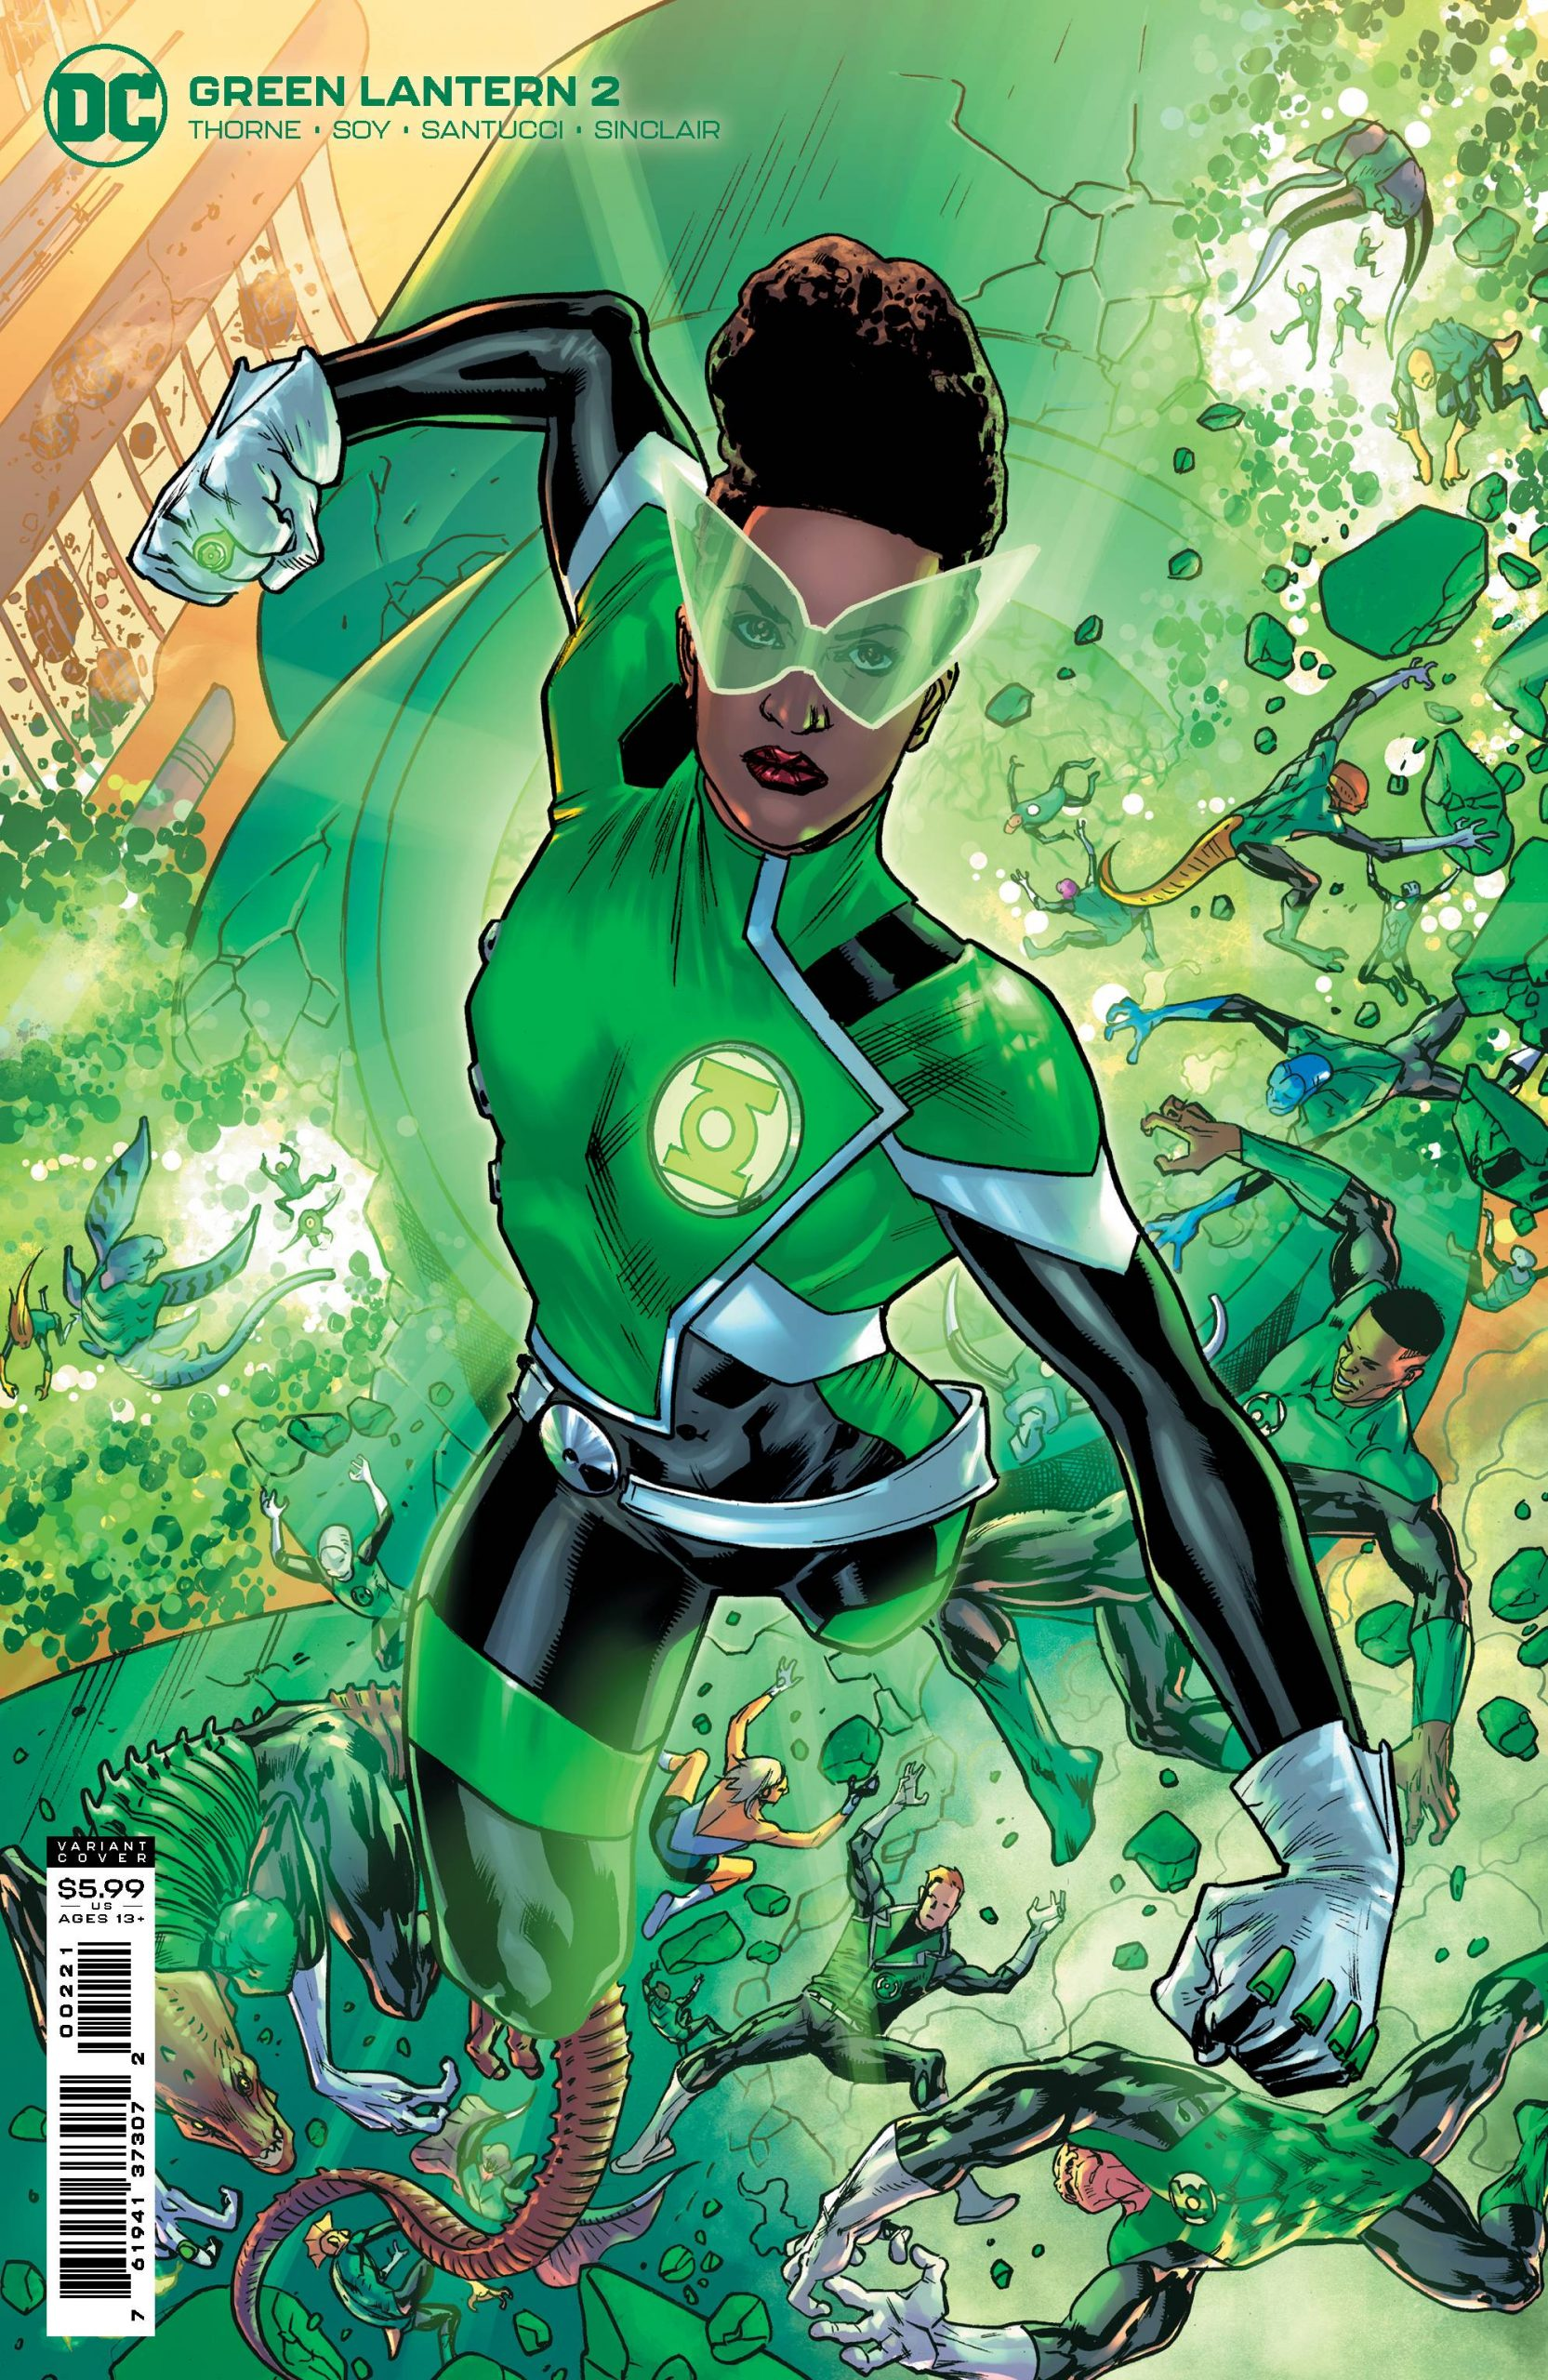 Green-Lantern-2-spoilers-0-2-scaled-1 Green-Lantern-2-spoilers-0-2-scaled-1